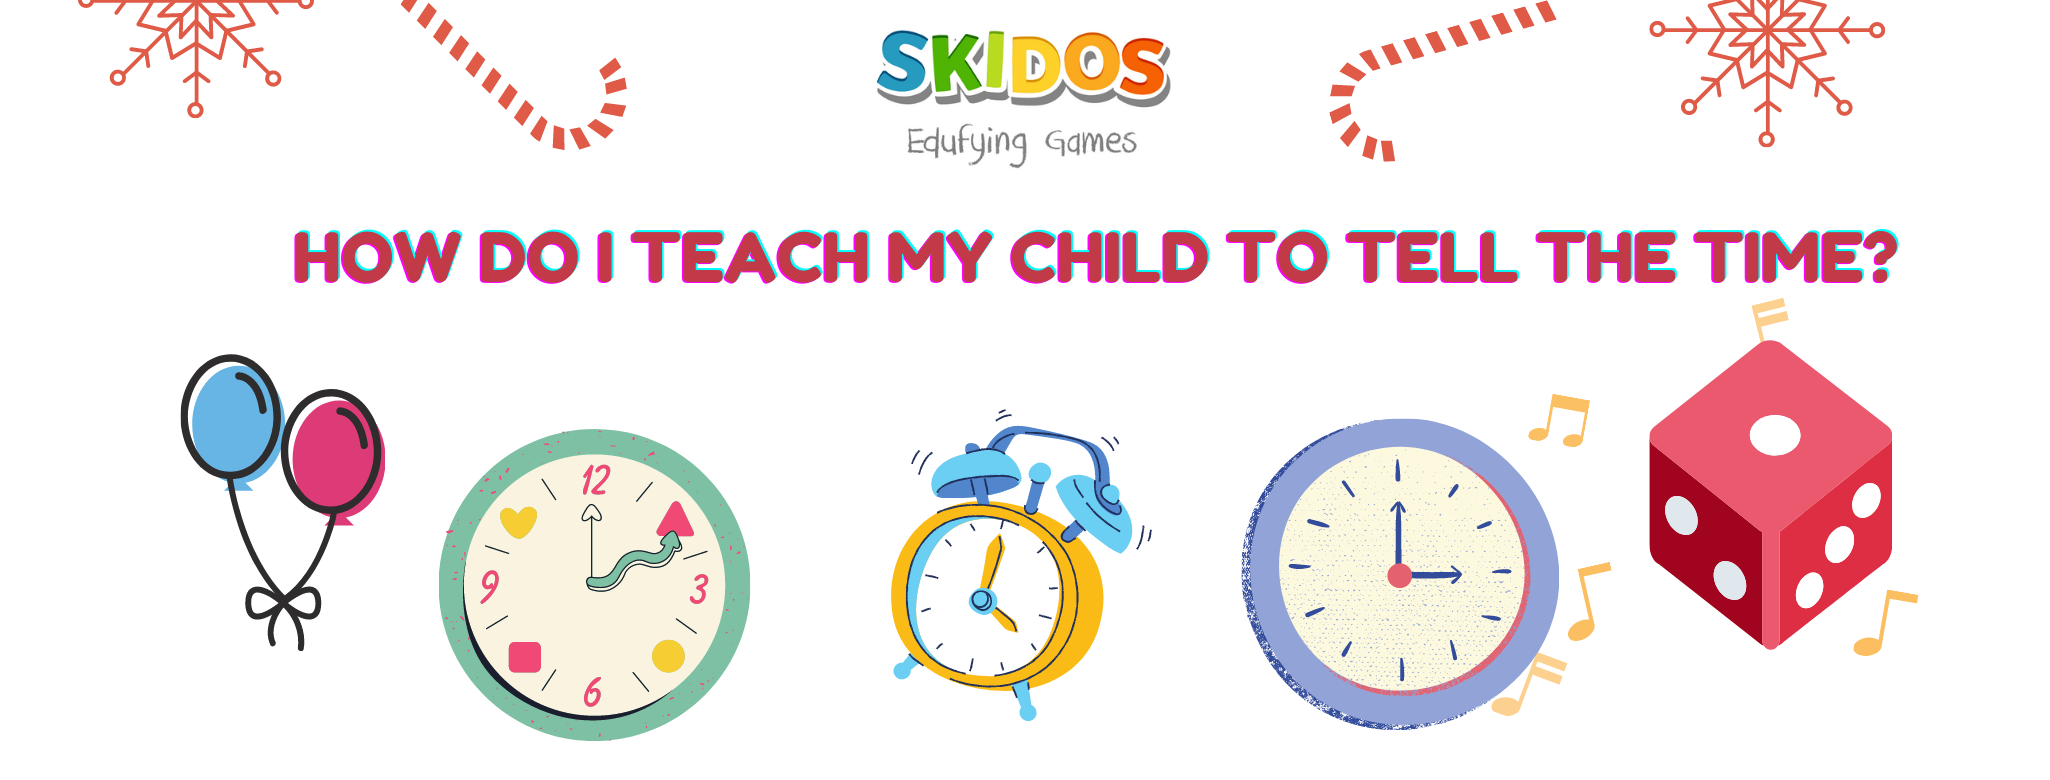 How do I teach my child to tell the time